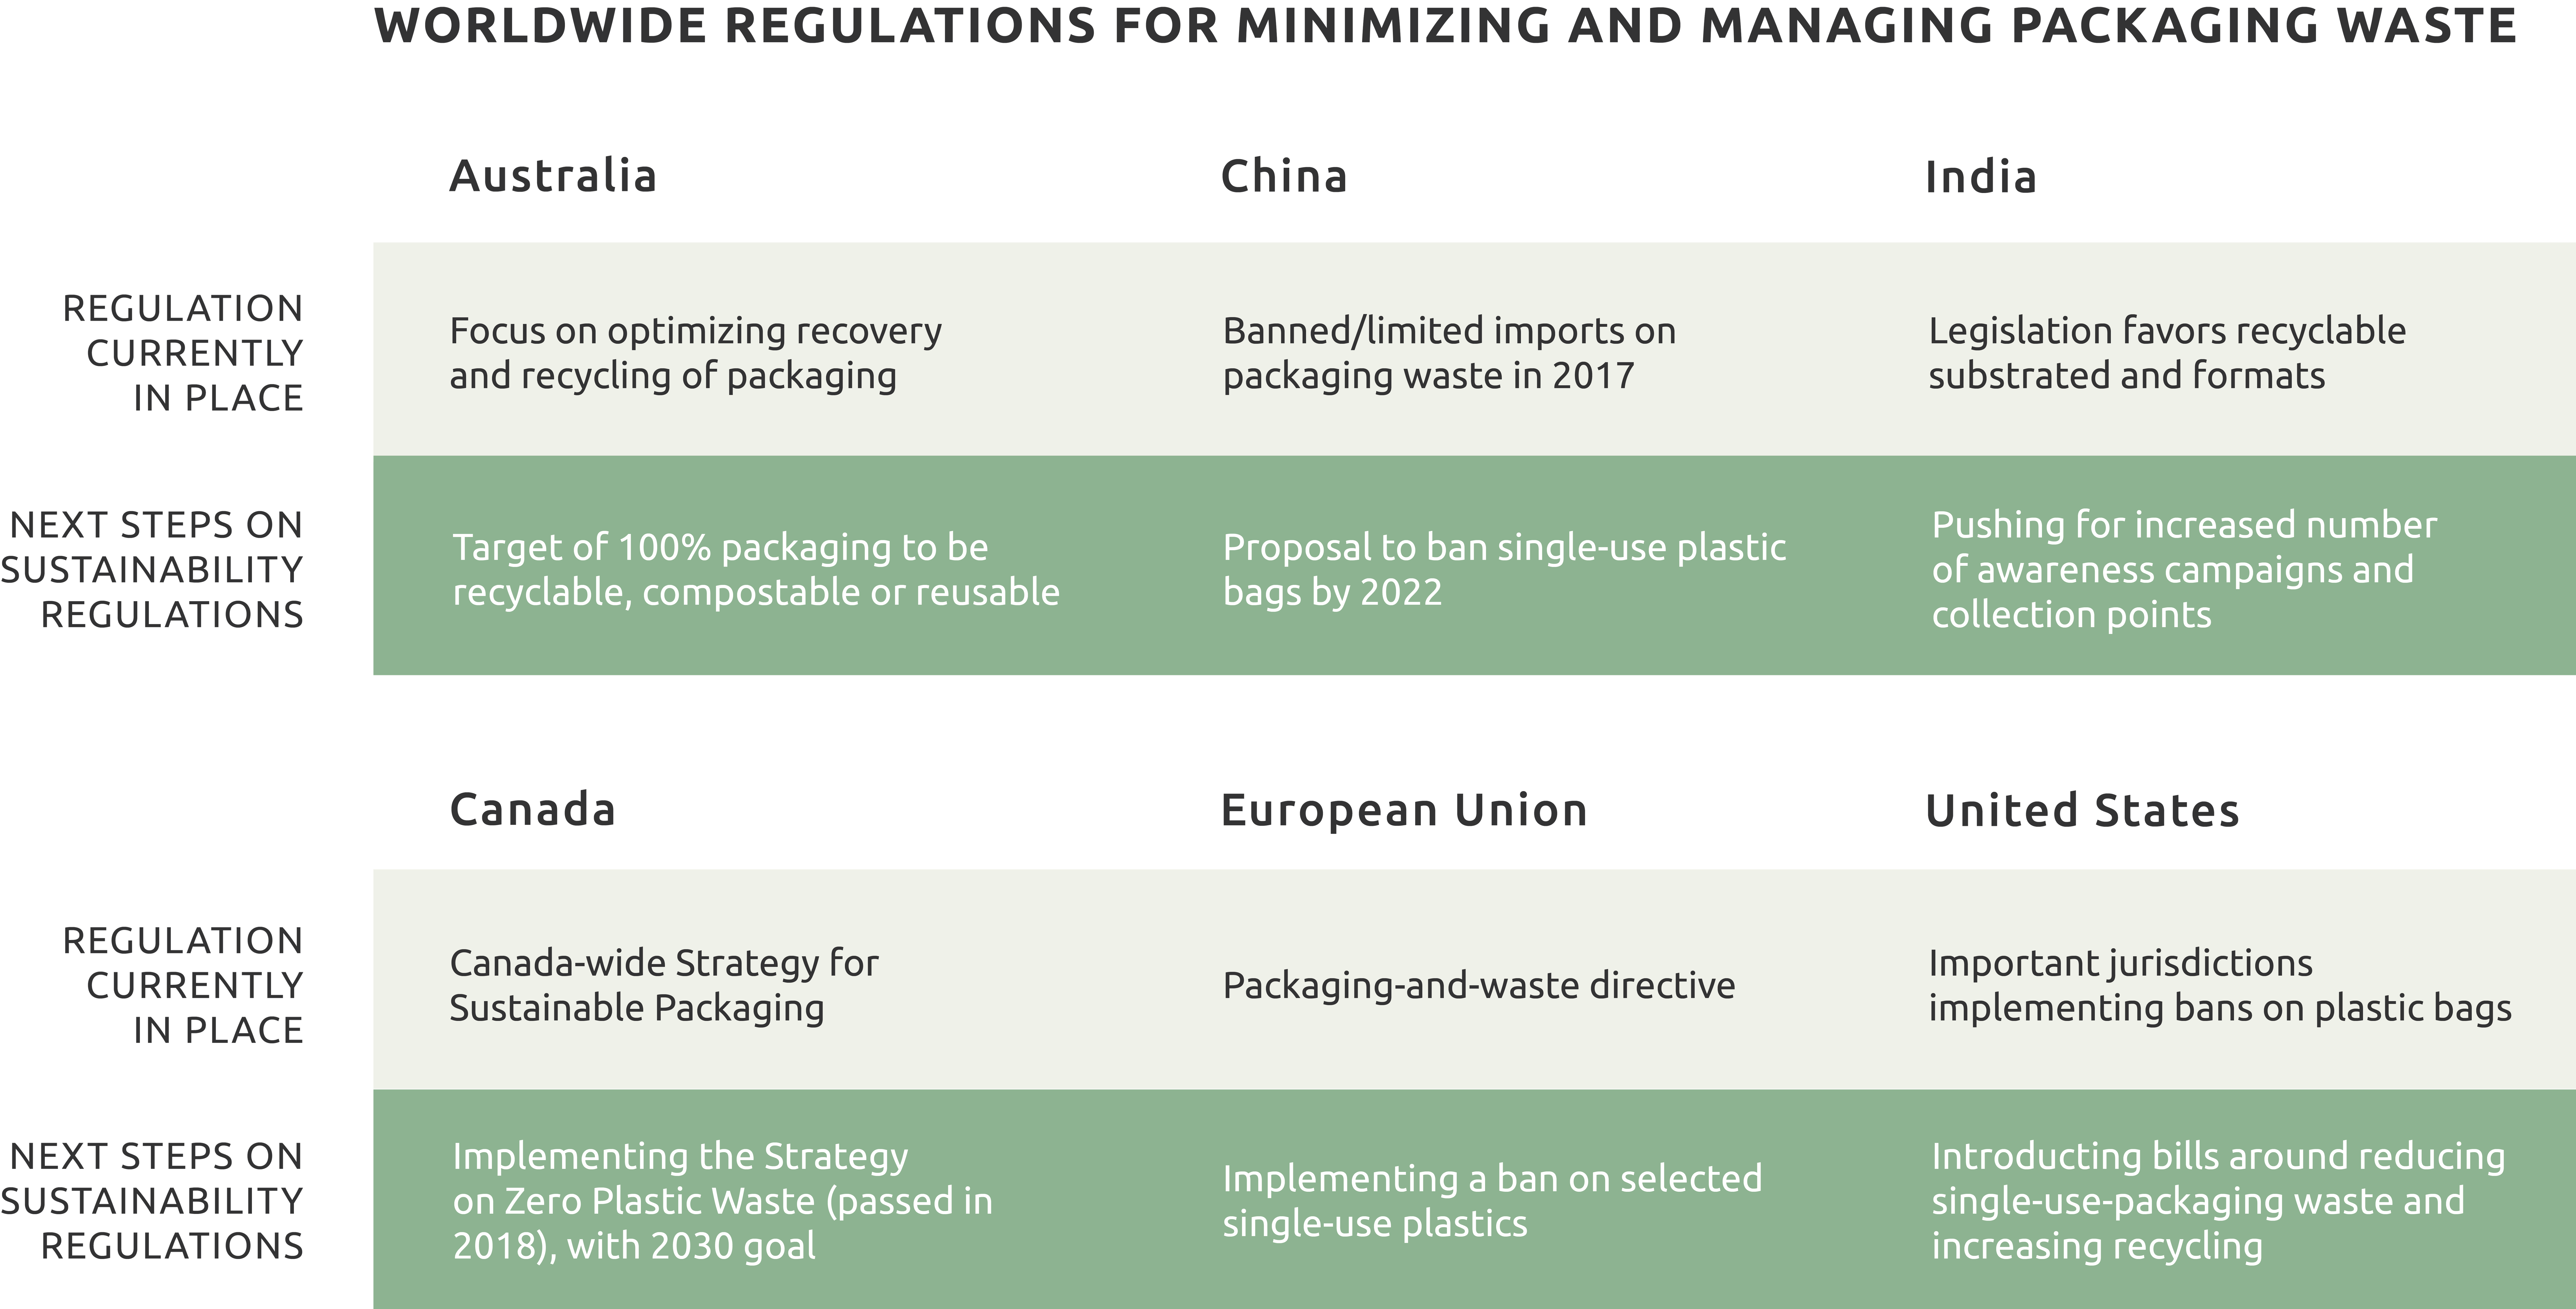 Worldwide regulations for minimizing and managing packaging waste